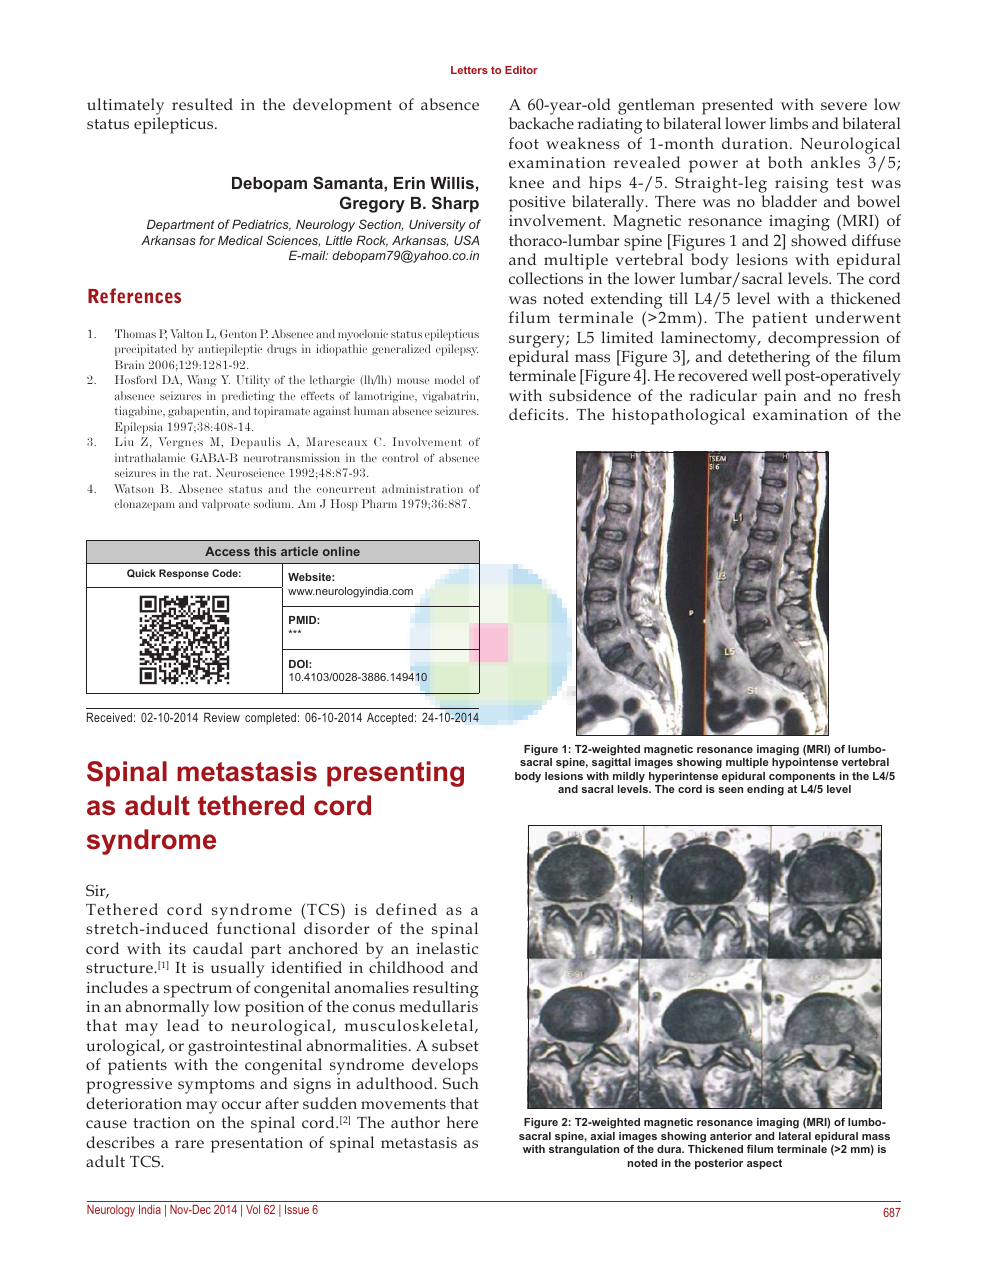 Spinal Metastasis Presenting As Adult Tethered Cord Syndrome Topic Of Research Paper In Clinical Medicine Download Scholarly Article Pdf And Read For Free On Cyberleninka Open Science Hub $ normal position essentially, a normal the entity of an occult tight filum terminale syndrome, characterized by clinical findings consistent. cyberleninka